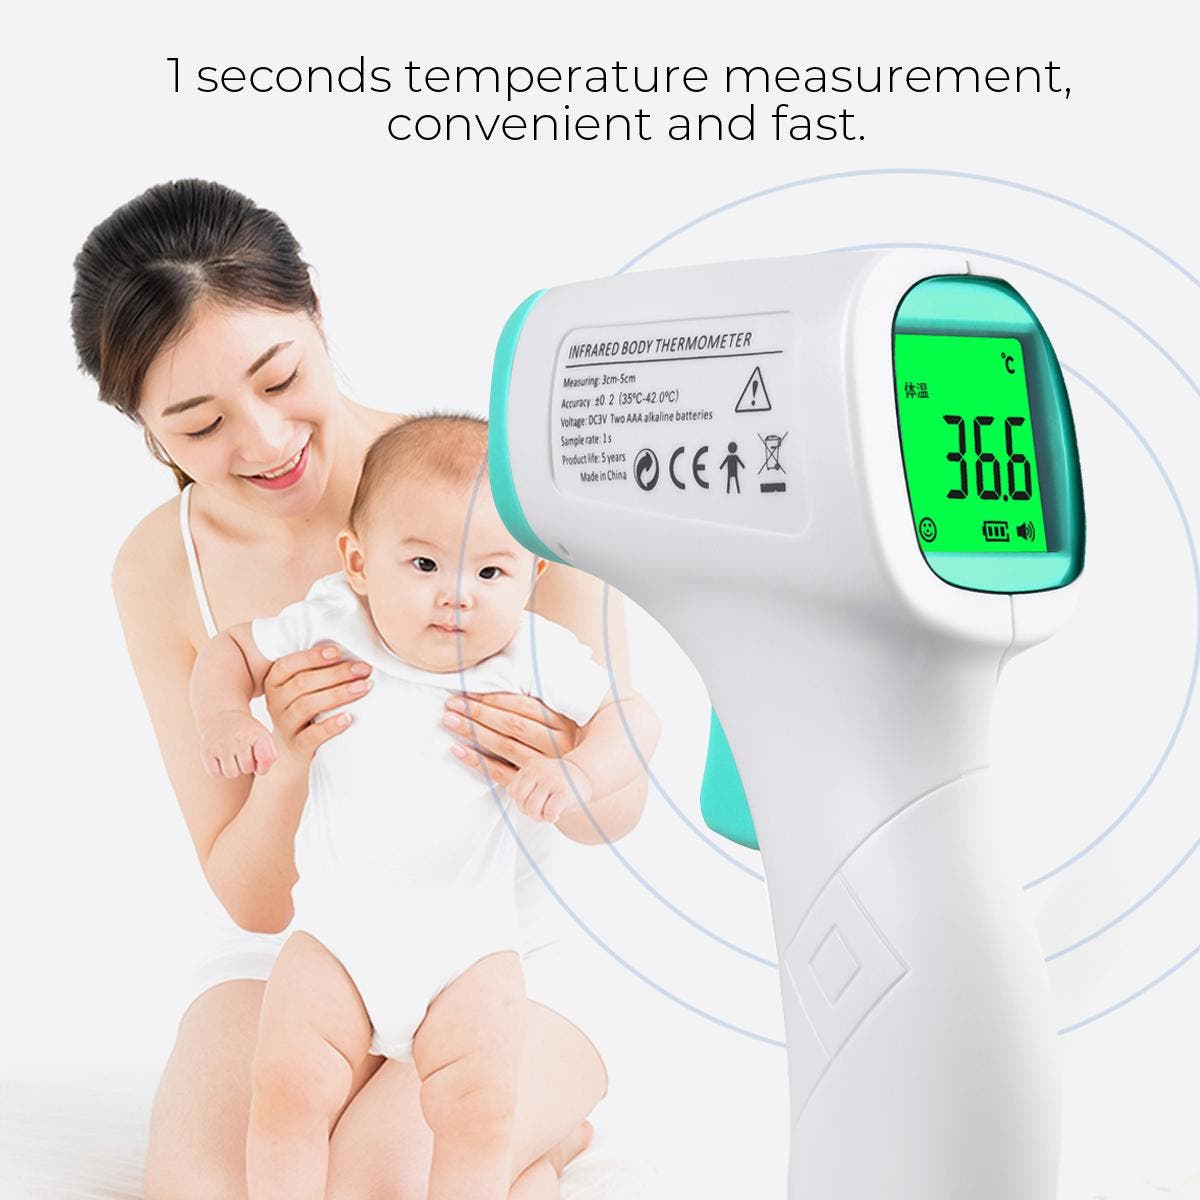 Lcd Display Infrared Forehead Thermometer For Adults And Children without Battery or Cotton Anti-Dust Mask(Thermometer) Type A:Thermometer Specifications: Measure mode: Body temperature and surface temperature - Measurement range: - Body temperature mode: 32 – 42.9 Deg.C - Surface temperature mode: 0 – 80 Deg.C - Measuring accuracy 0 – 31.9 Deg.C: ± 2 Deg.C 32-34.9 Deg.C: ± 0.3 Deg.C 35-41.9 Deg.C: ± 0.2 Deg.C 42-42.9 Deg.C: ± 0.3 Deg.C 43 – 80 Deg.C: ± 2 Deg.C - Sensing distance: 1 – 5 cm - Display accuracy: 0.1 Deg.C - Resolution: ±0.1 Deg.C Package included: Type A: 1 x Thermometer    Type B:Cotton Anti-Dust Mask Fabric: Cotton Package: OPP bag Size: 18 * 12cm Weight: About 12g Mask style: ear type Function: dust proof Specification: double layer Packing: 2pcs/pack Washing index: 30 ° C, no bleaching, no ironing, no dry cleaning, hanging and drying Package included: Type B: 2Pcs Cotton Anti-Dust Mask